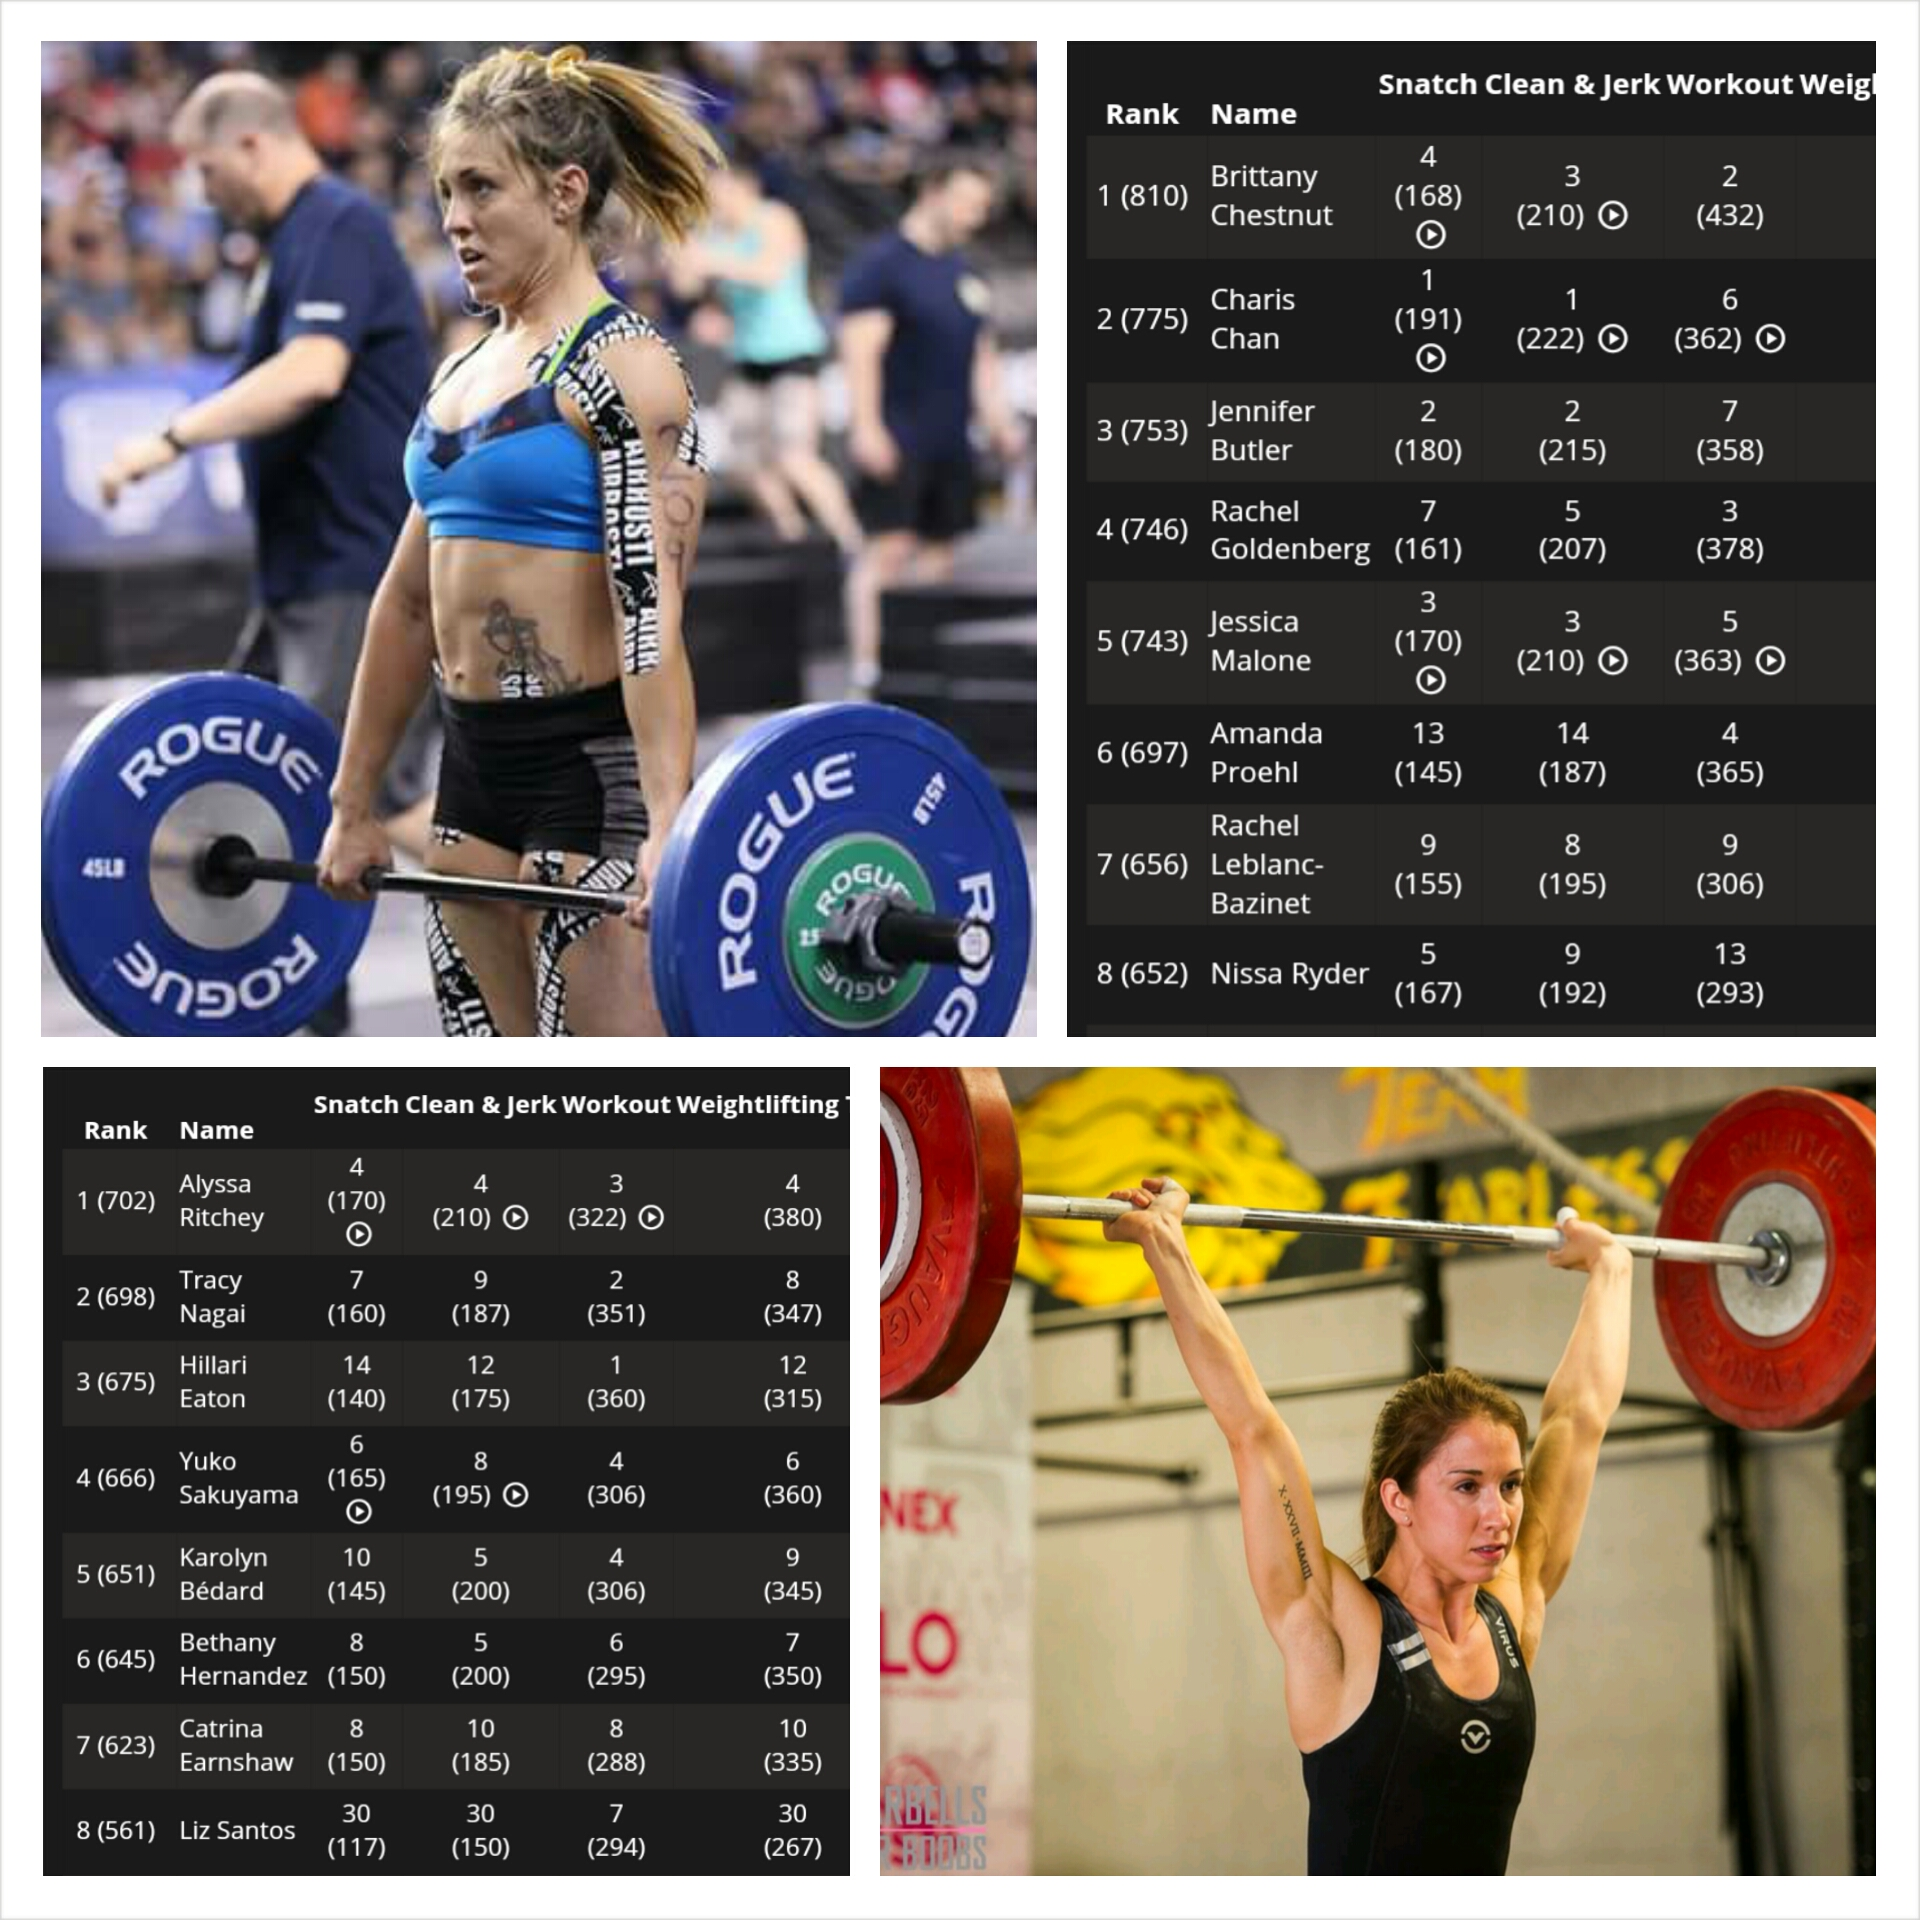 Congratulations to Bethany and Brittany for finishing top in the world in the Rogue CrossFit Liftoff. The CrossFit Liftoff was 3 scored events: Max Snatch, Max Clean and Jerk and one CrossFit workout. After it was all said and done Brittany finished 1st in the world in her weight class. Bethany finished 6th in the world in her weight class. Nice job ladies!